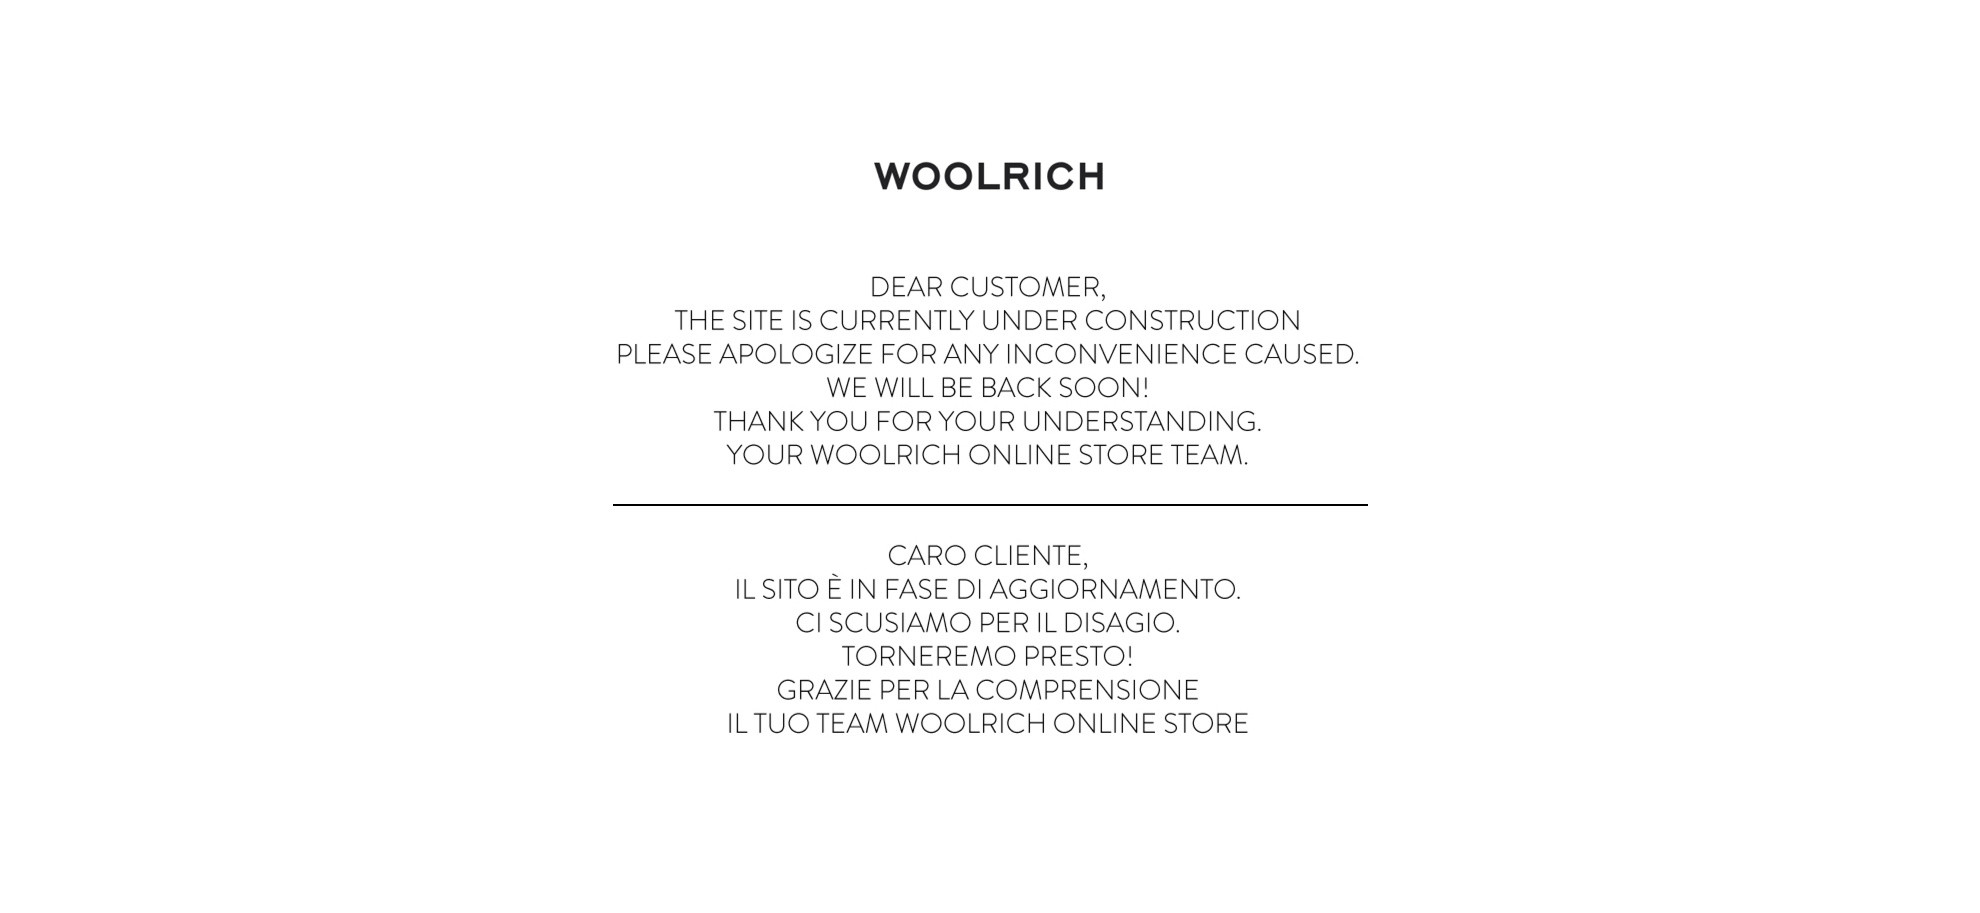 Dear Customer, Due to maintenance work, the webshop is temporarily unavailable. Please try again in a few minutes. Thank you for your understanding. Your Woolrich team